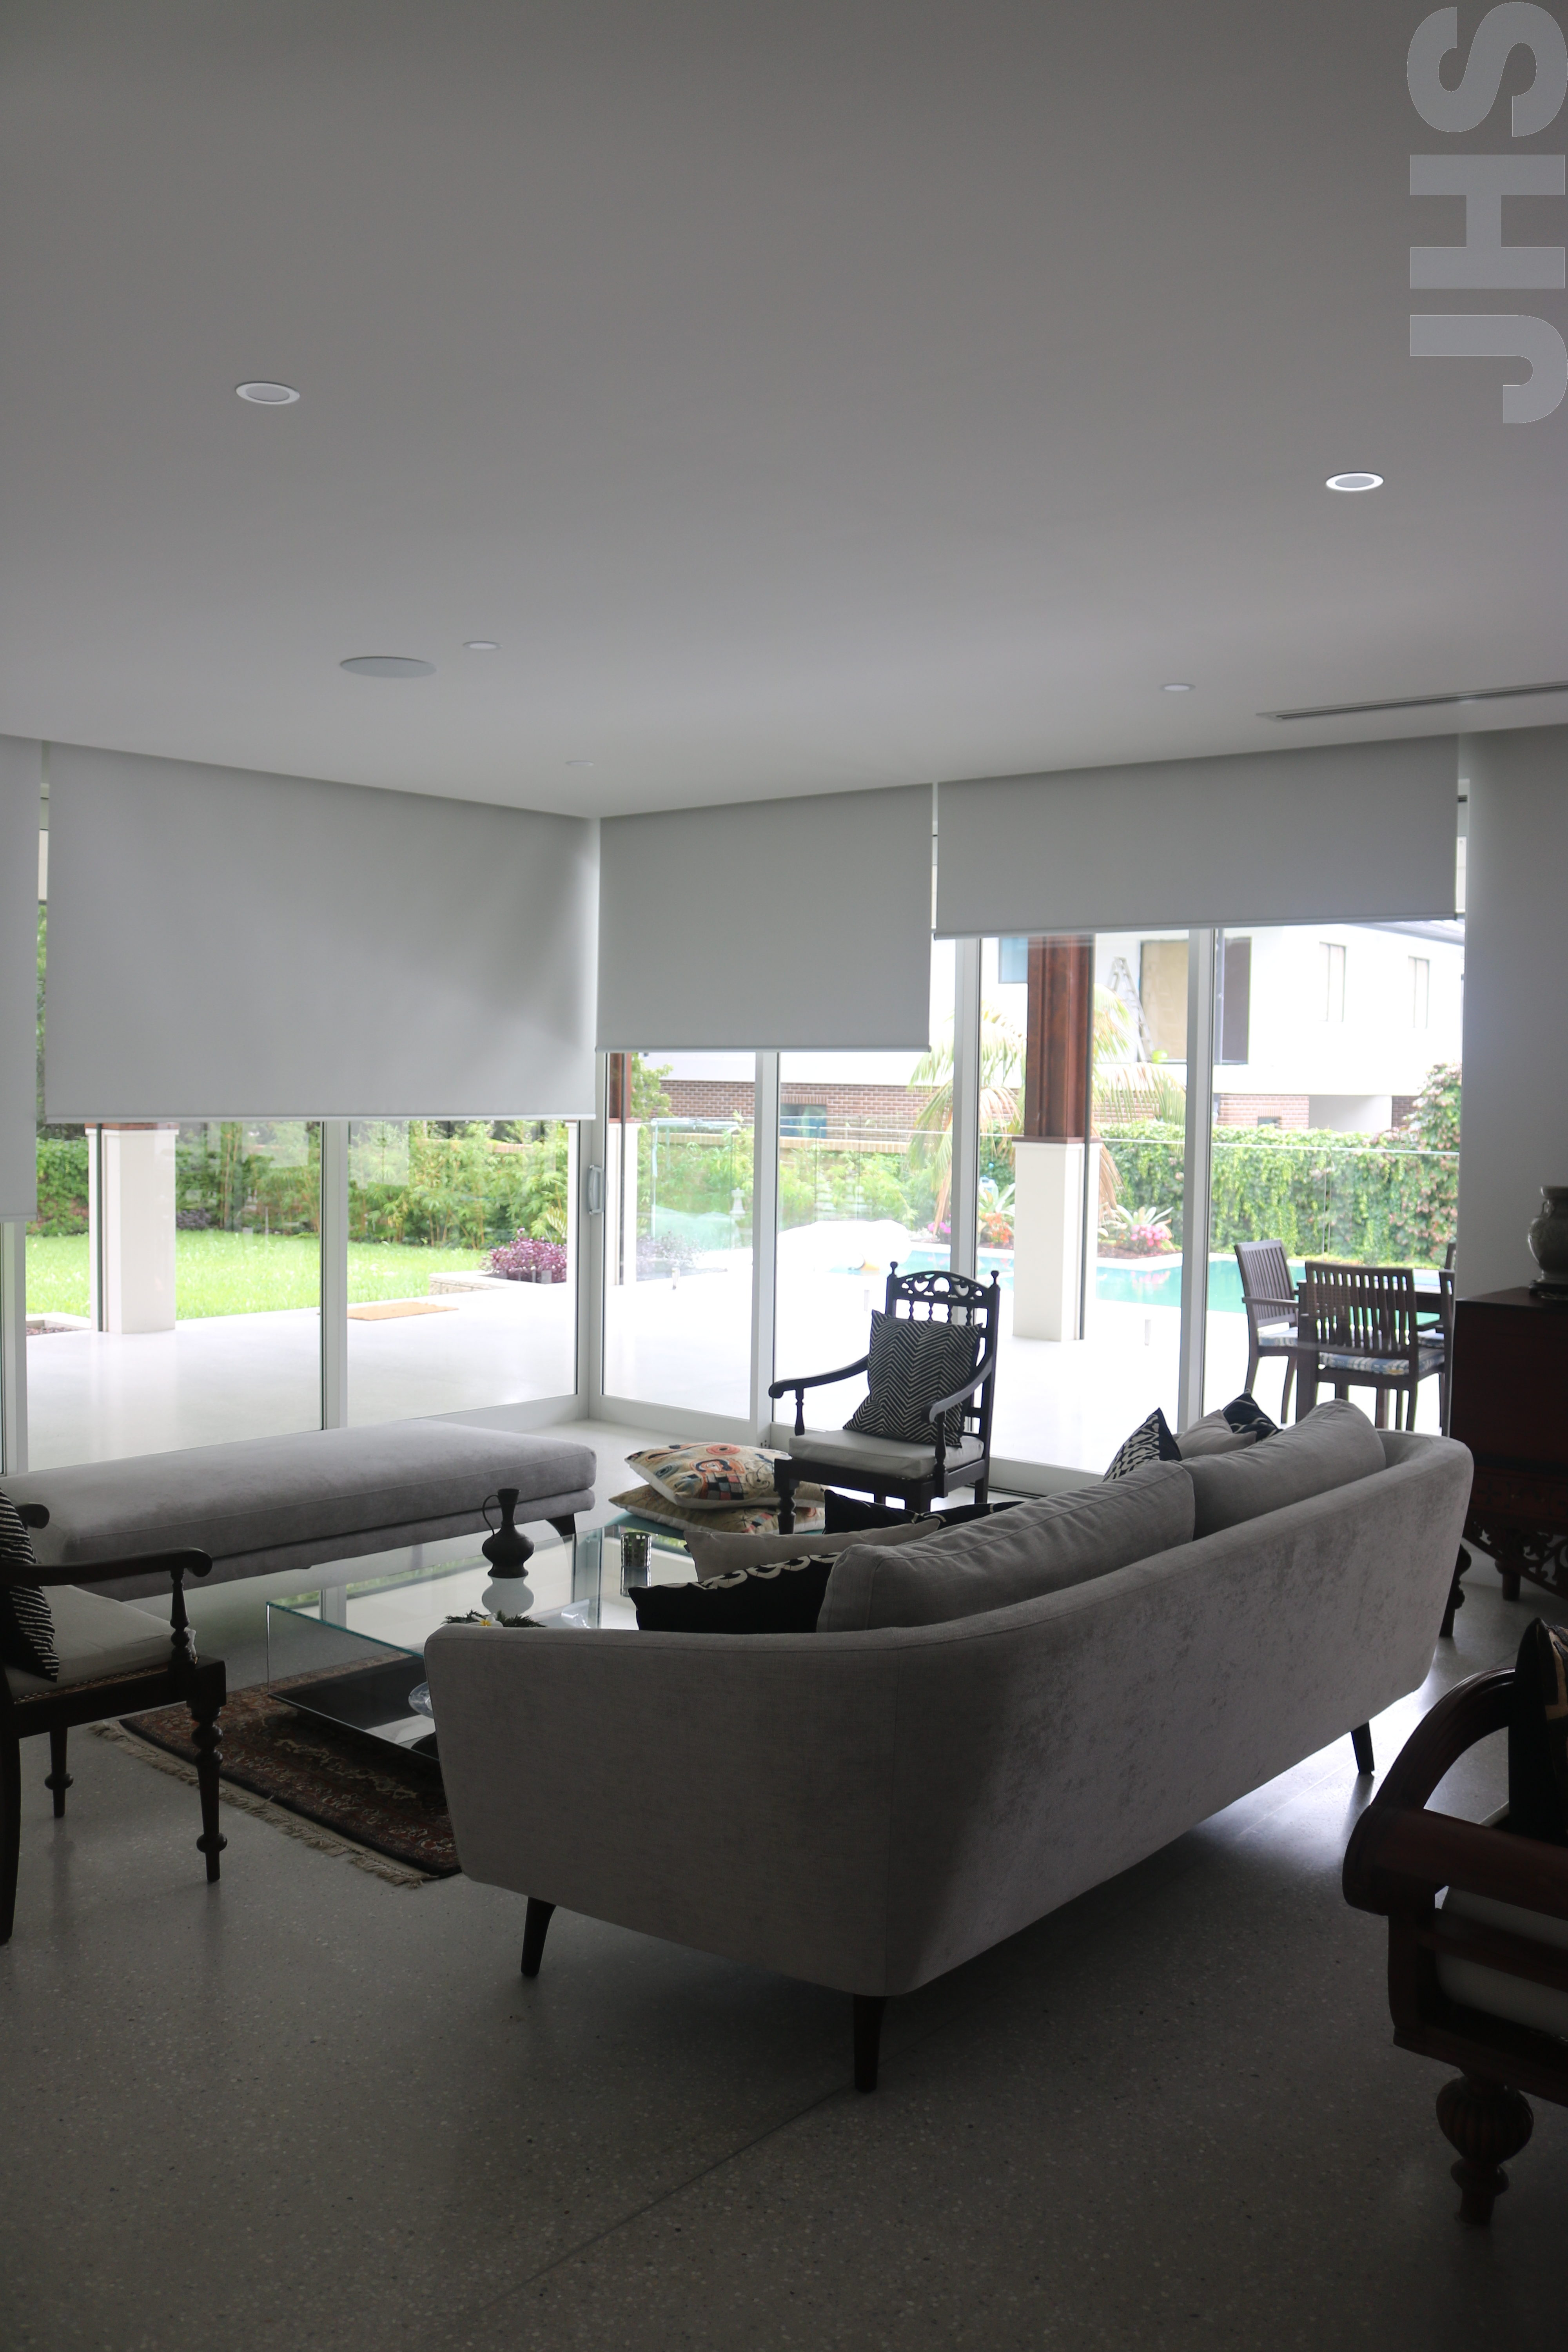 blinds pin com window automated always lutron track unison together motorized shades in beautiful